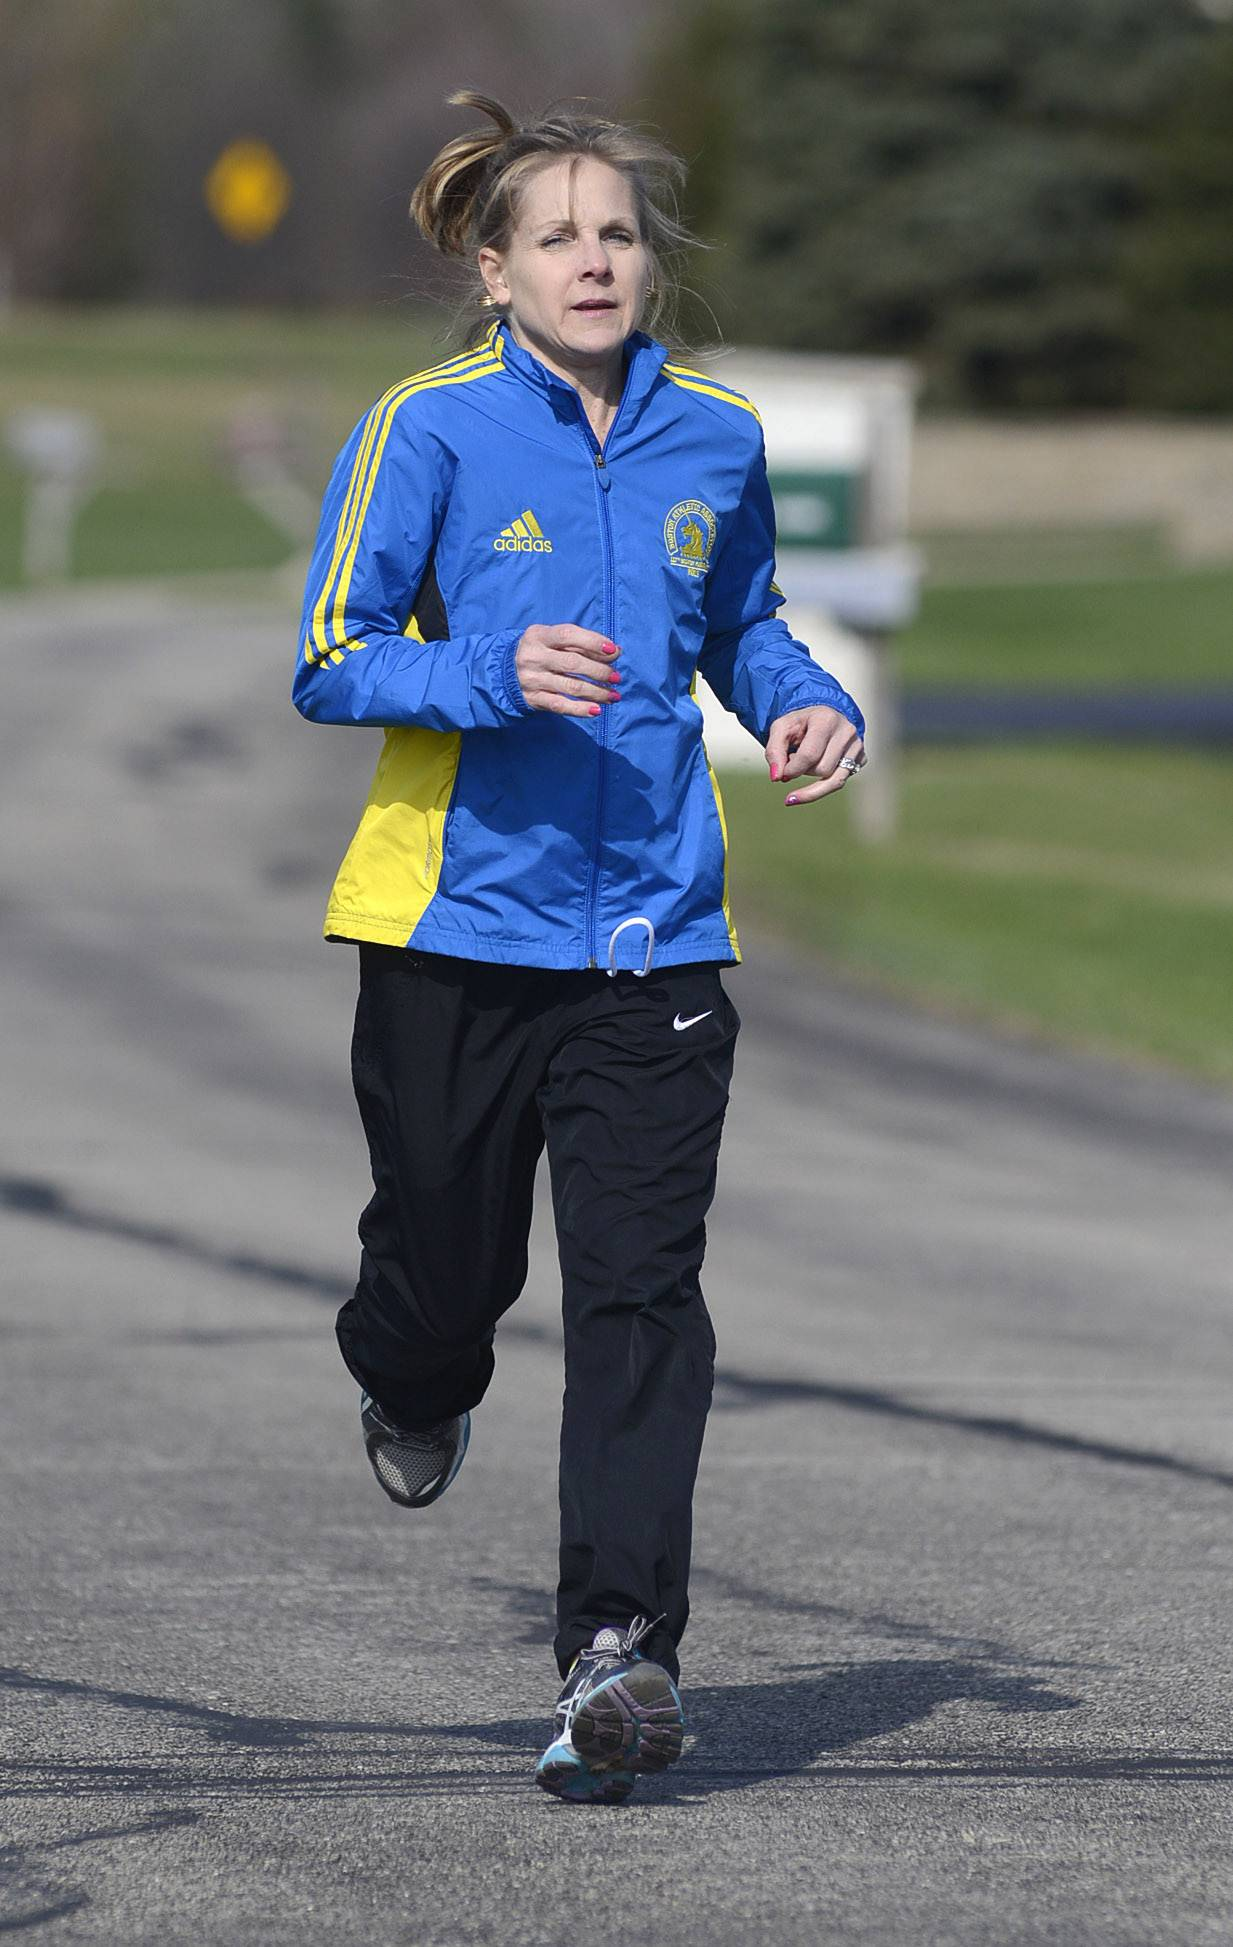 Sue Gruner of Burlington crossed the finish line in last year's Boston Marathon just seconds before the first of two terrorist bombs exploded. Injuries kept her from returning for this year's race.